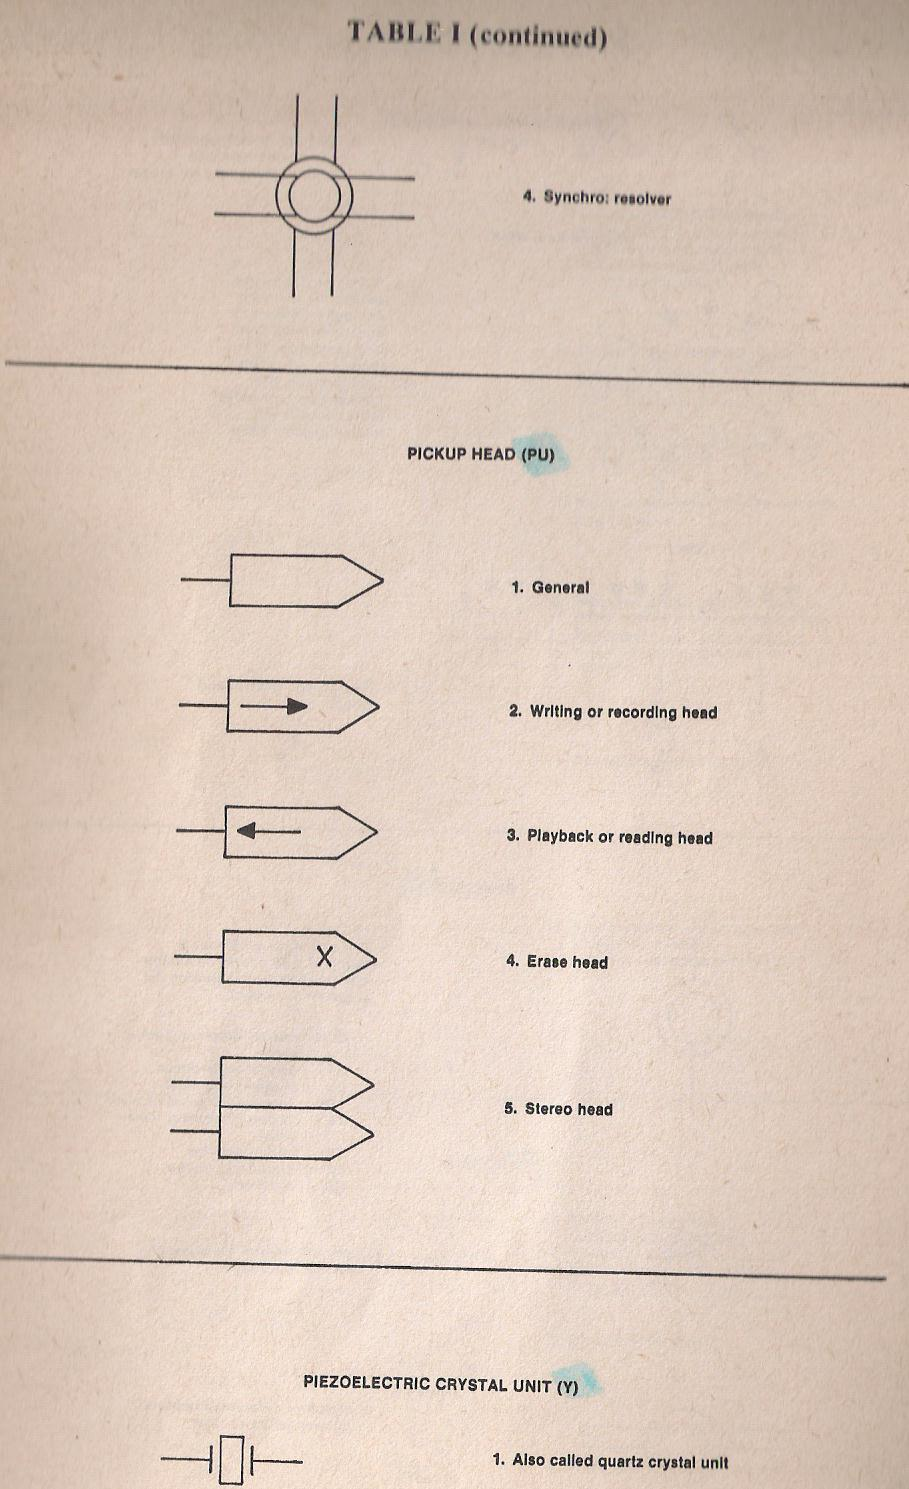 Reading And Analyzing Schematic Diagrams Diagram 002m Table 1 By Larry E Gugle K4rfe